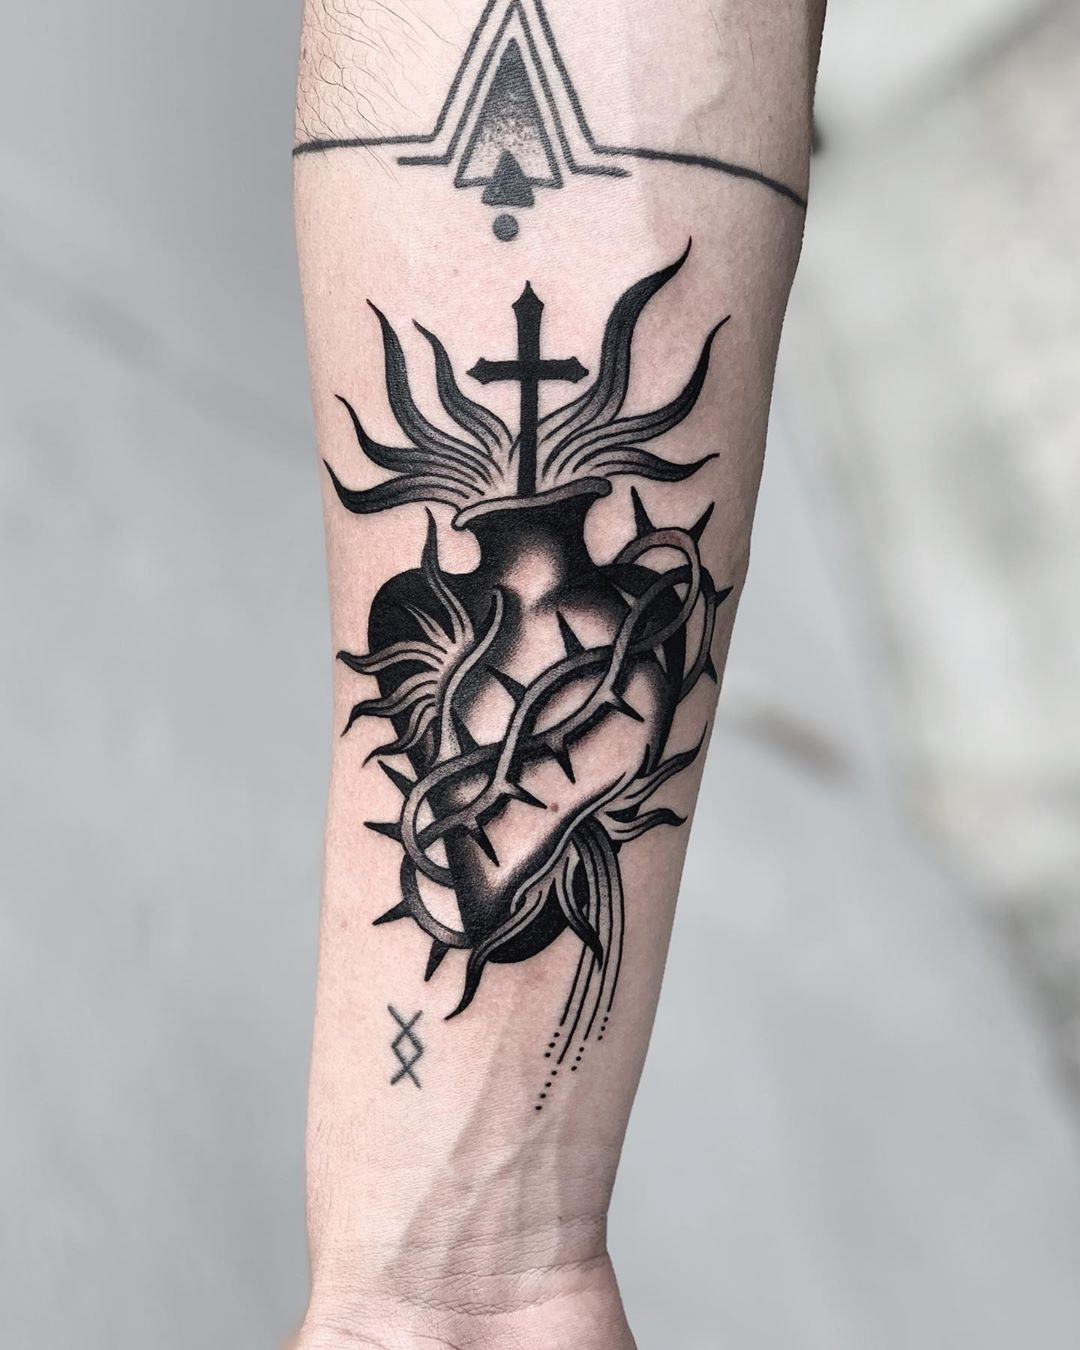 Sacred heart on a forearm by Javier Betancourt